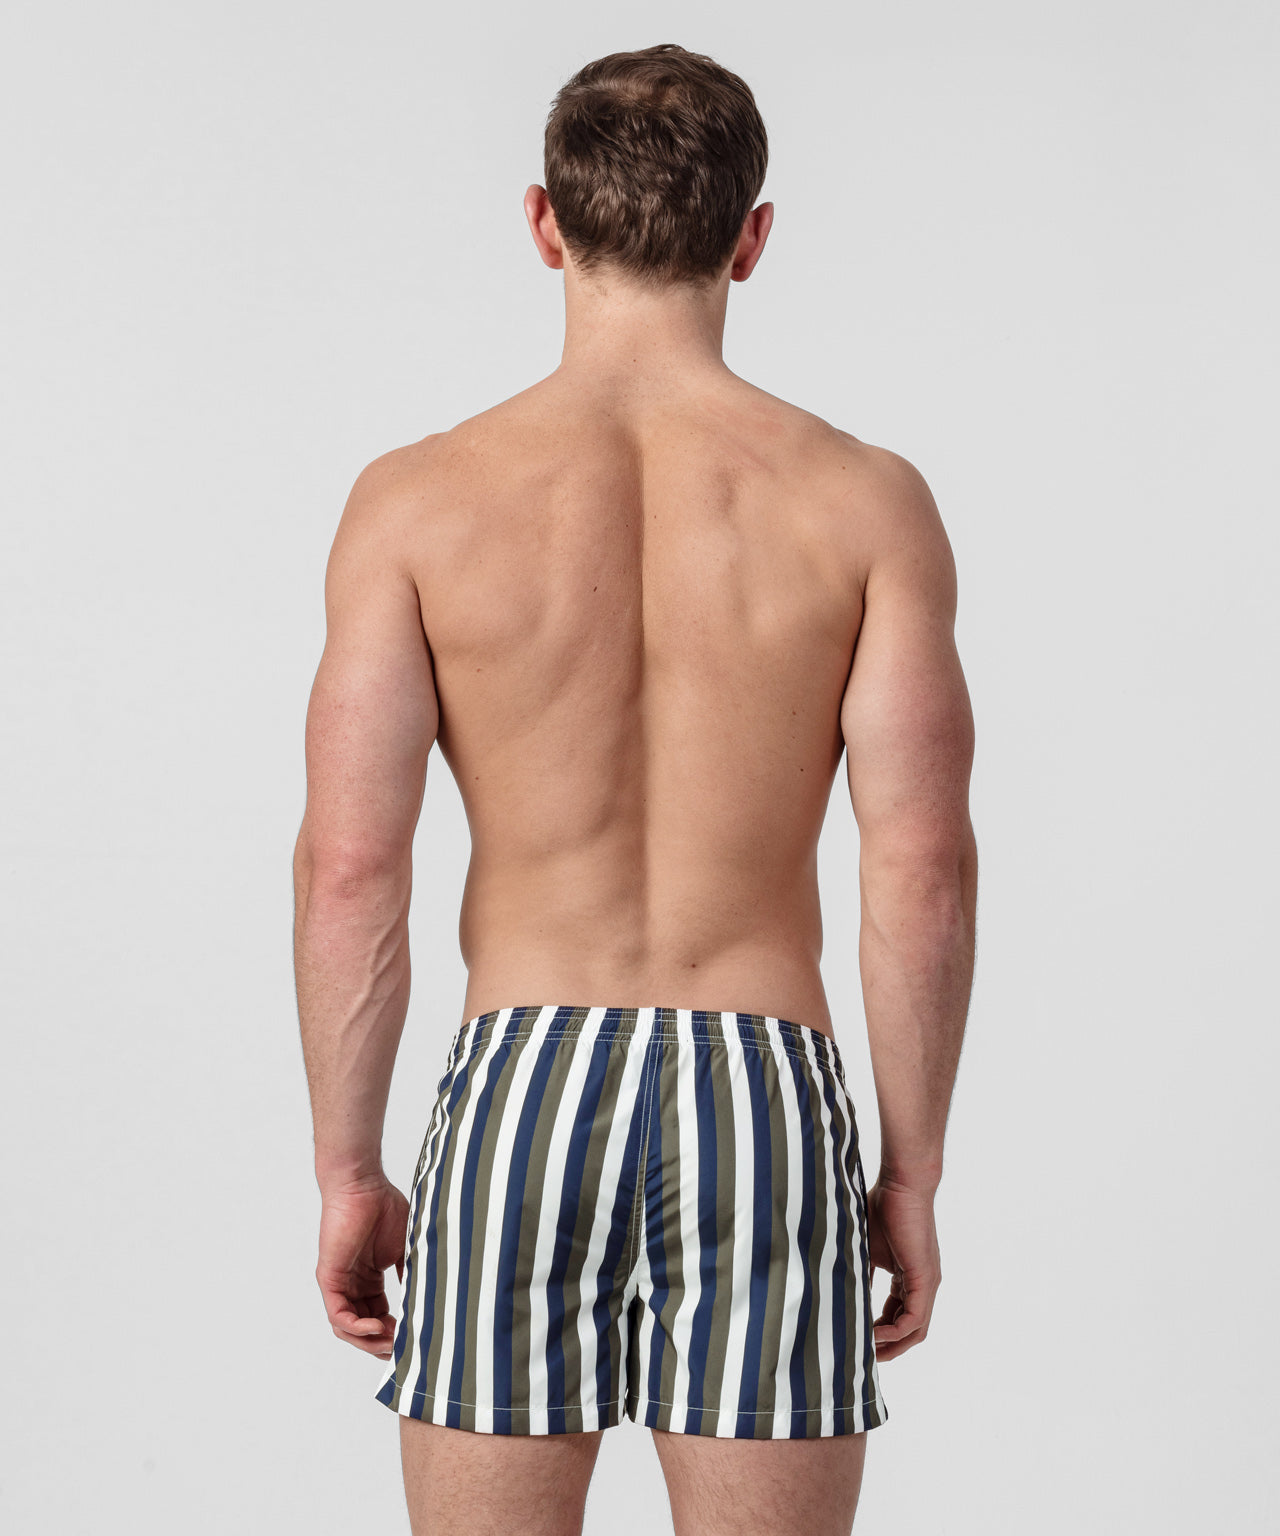 Striped Swim Shorts - white/navy/green camp